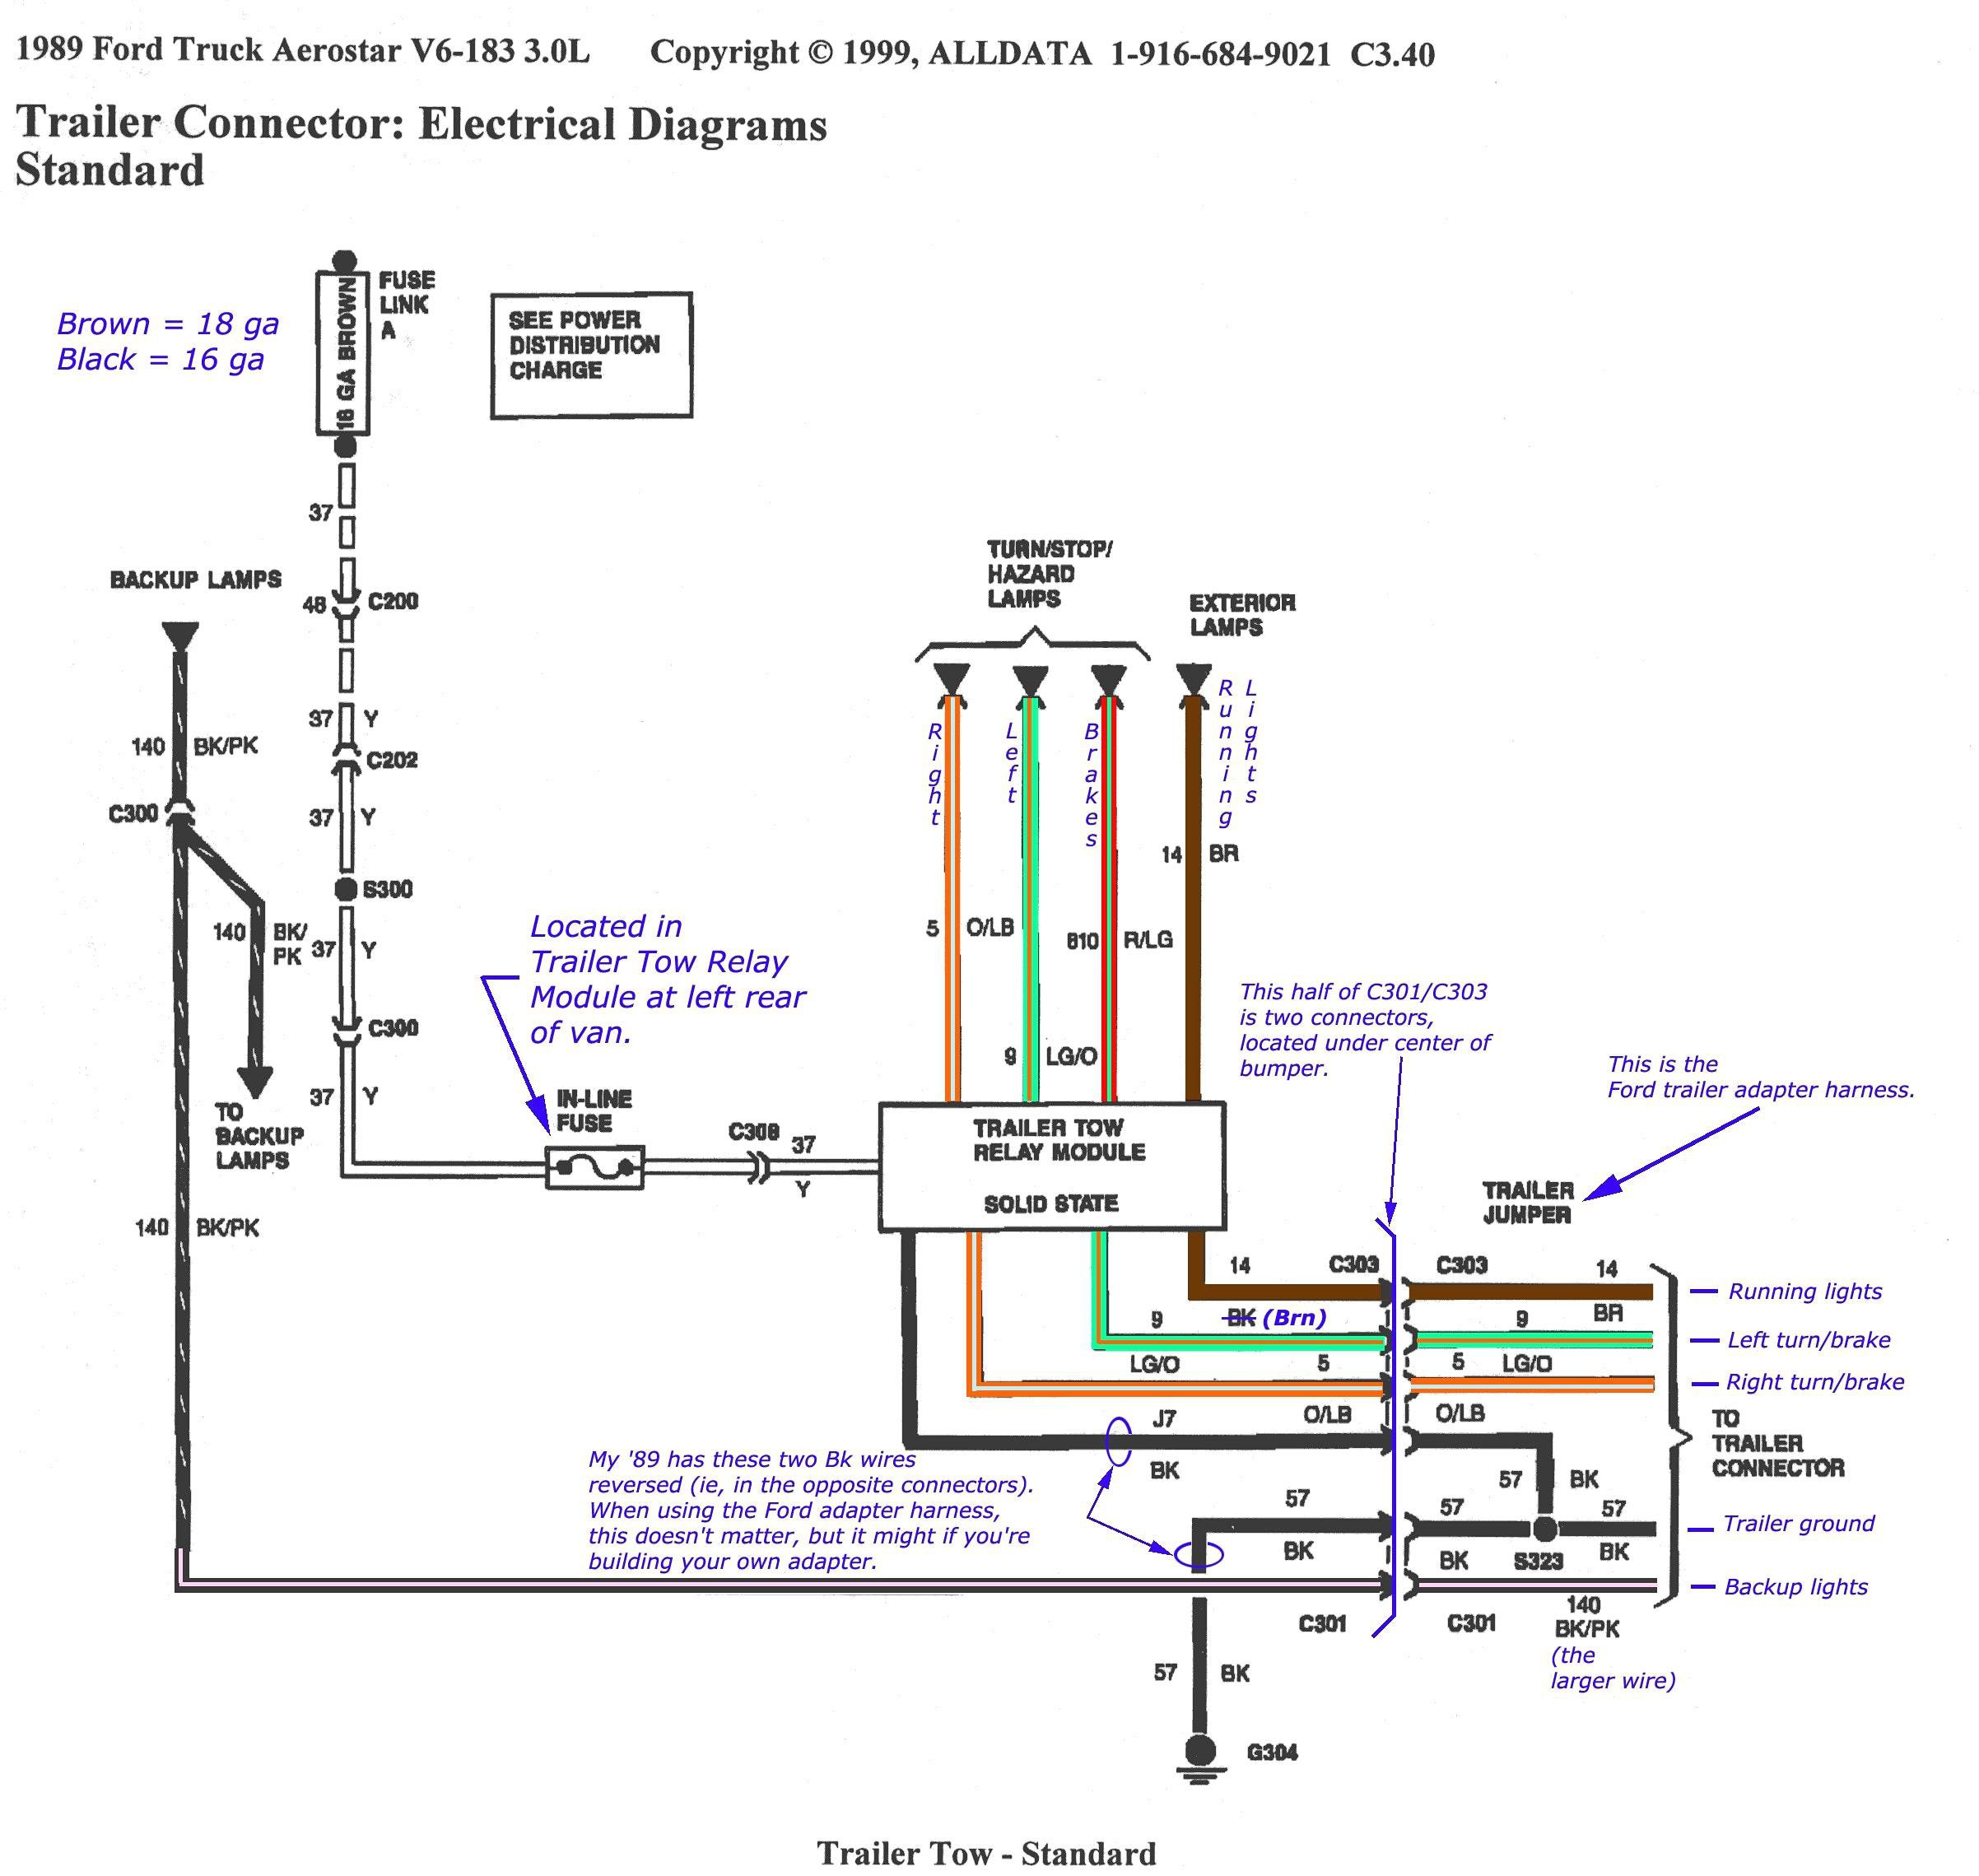 06 f350 trailer wiring diagram list of schematic circuit diagram 2006 Ford Expedition Fuel Wiring Diagram